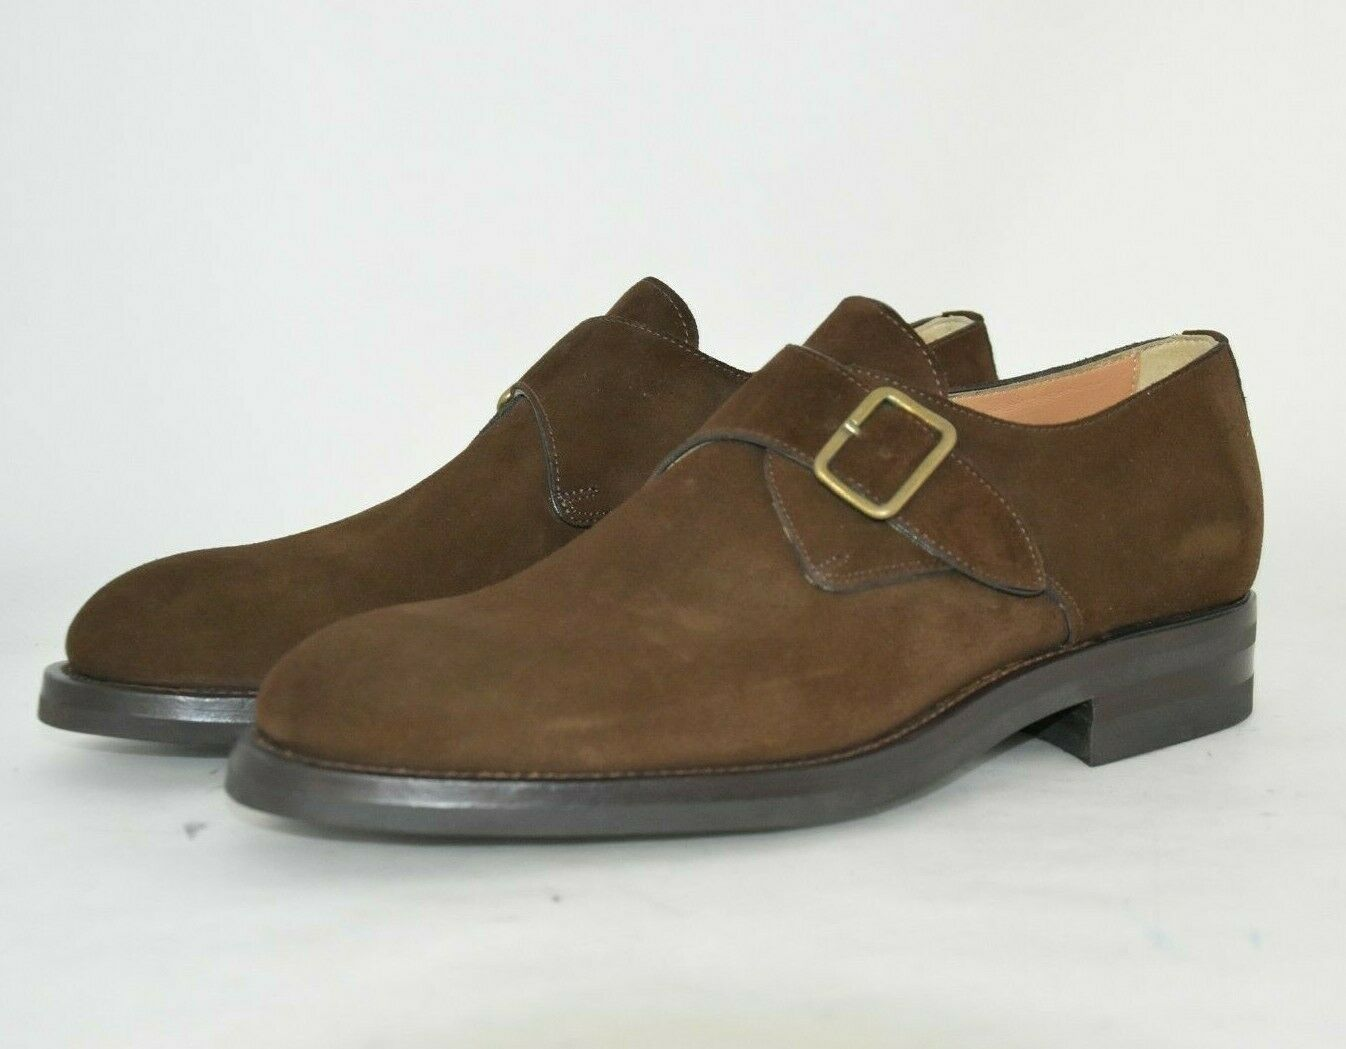 MEN-8½eu-9½usa-DERBY SINGLE MONKSTRAP-BROWN SUEDE-CAMOSCIO T.Mgold-LEATHER SOLE